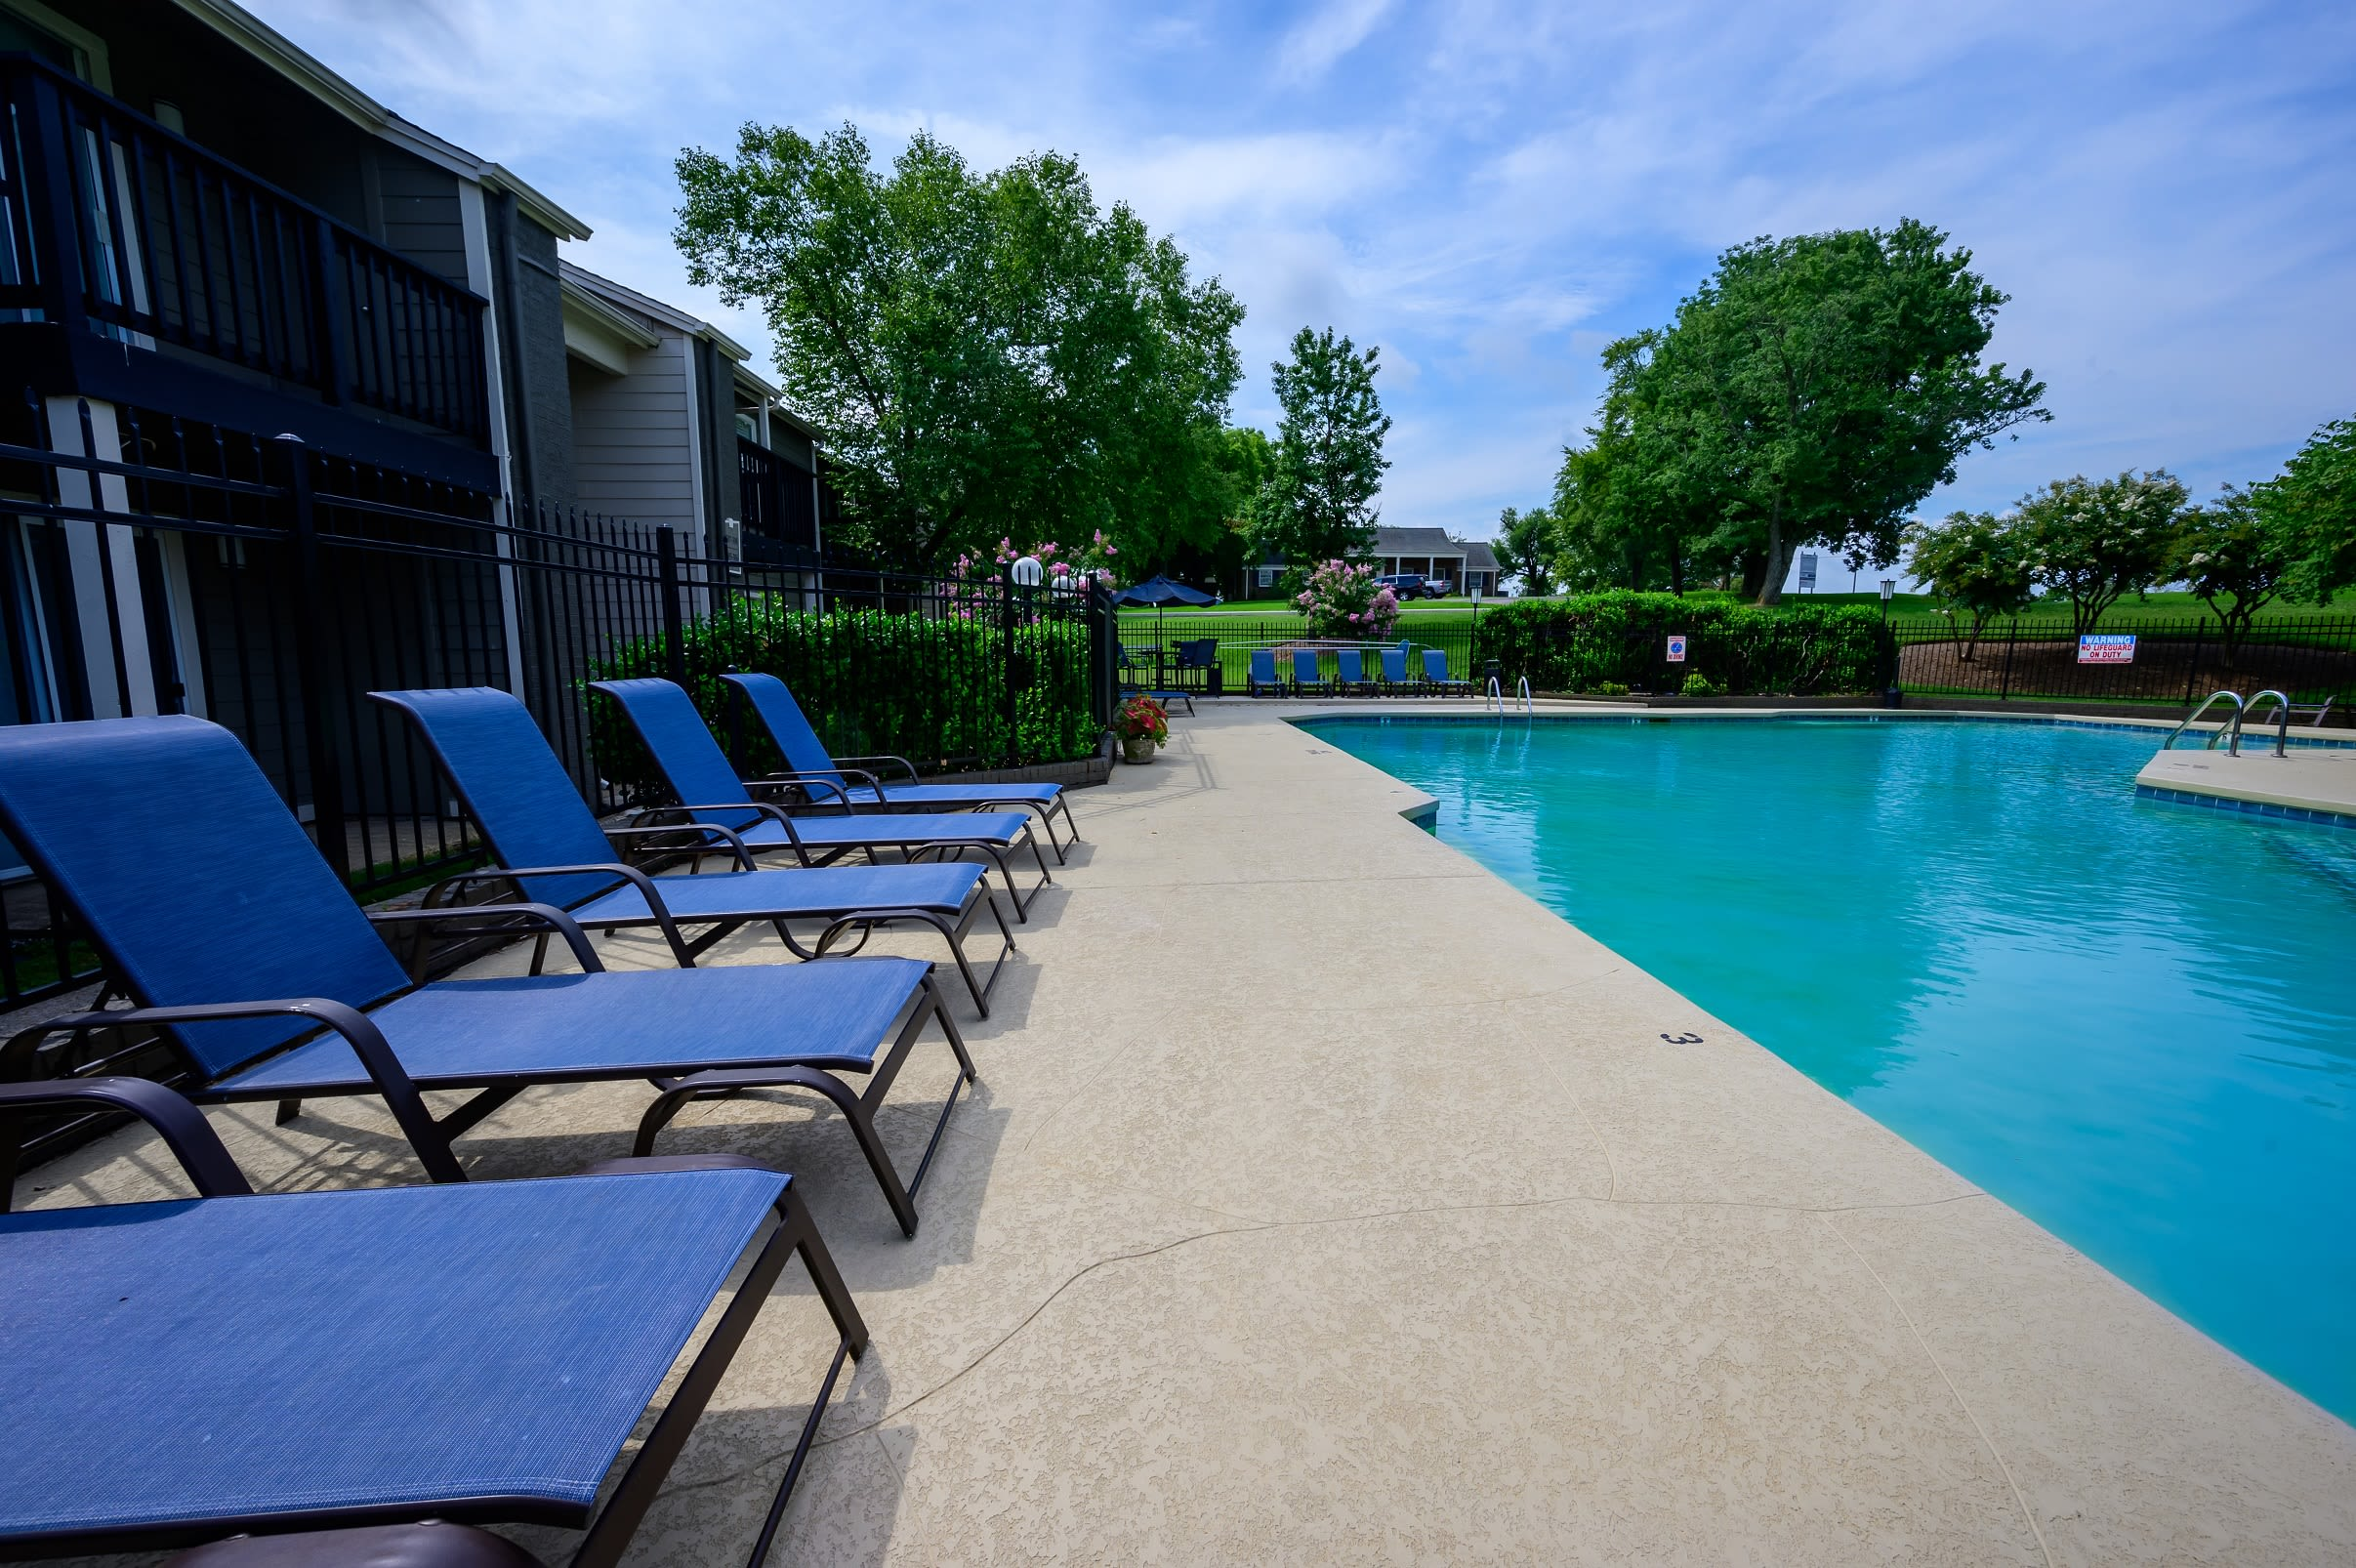 Resort-style swimming pool with a sundeck and lounge chairs at The Hamilton in Hendersonville, Tennessee